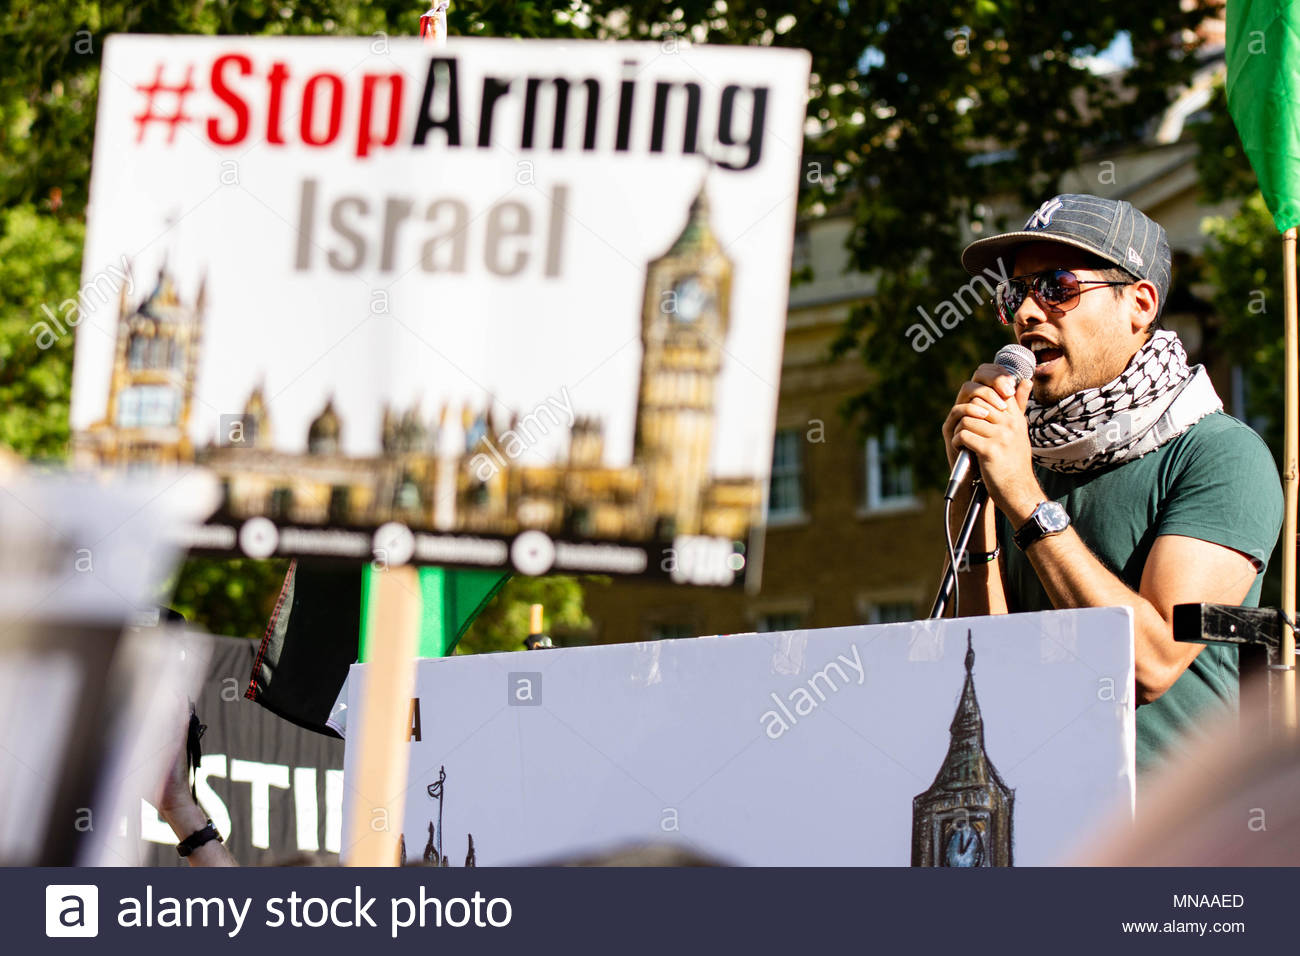 London, Great Britain. 15th May 2018. After more than 50 people were killed and 2000 wounded by Israeli soldiers in Gaza, the Palestine Solidarity Campaign, supported by Stop The War Coalition and the Muslim Association of Britain organised a protest against the 70 years of Nakba, and for the right of the Palestinians to return to their homeland. Credit: David Nash/Alamy Live News - Stock Image